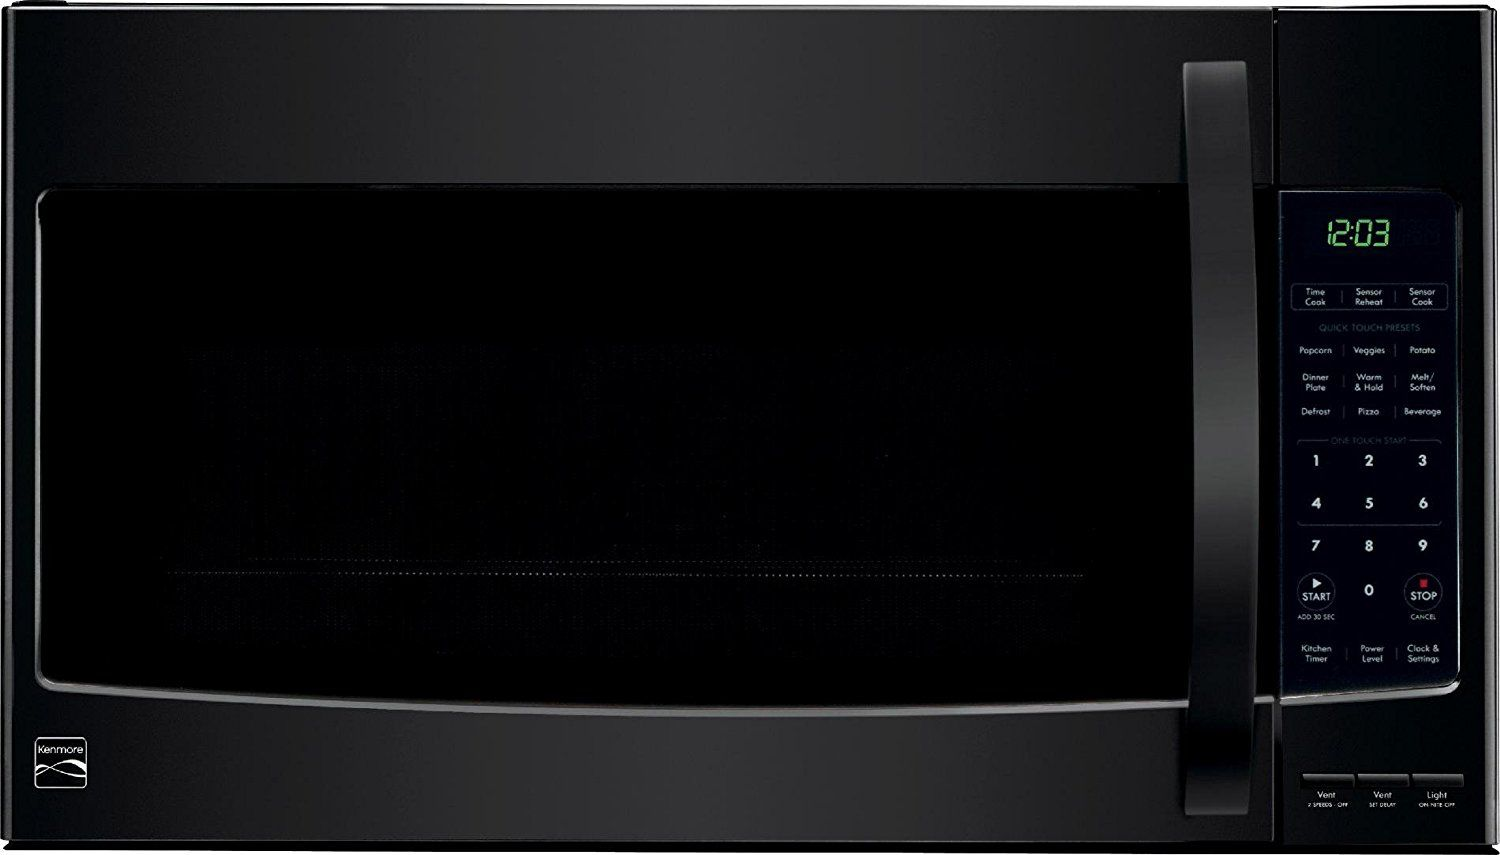 Kenmore Over The Range Microwave Hood Combination Oven 2 1 Cu Ft